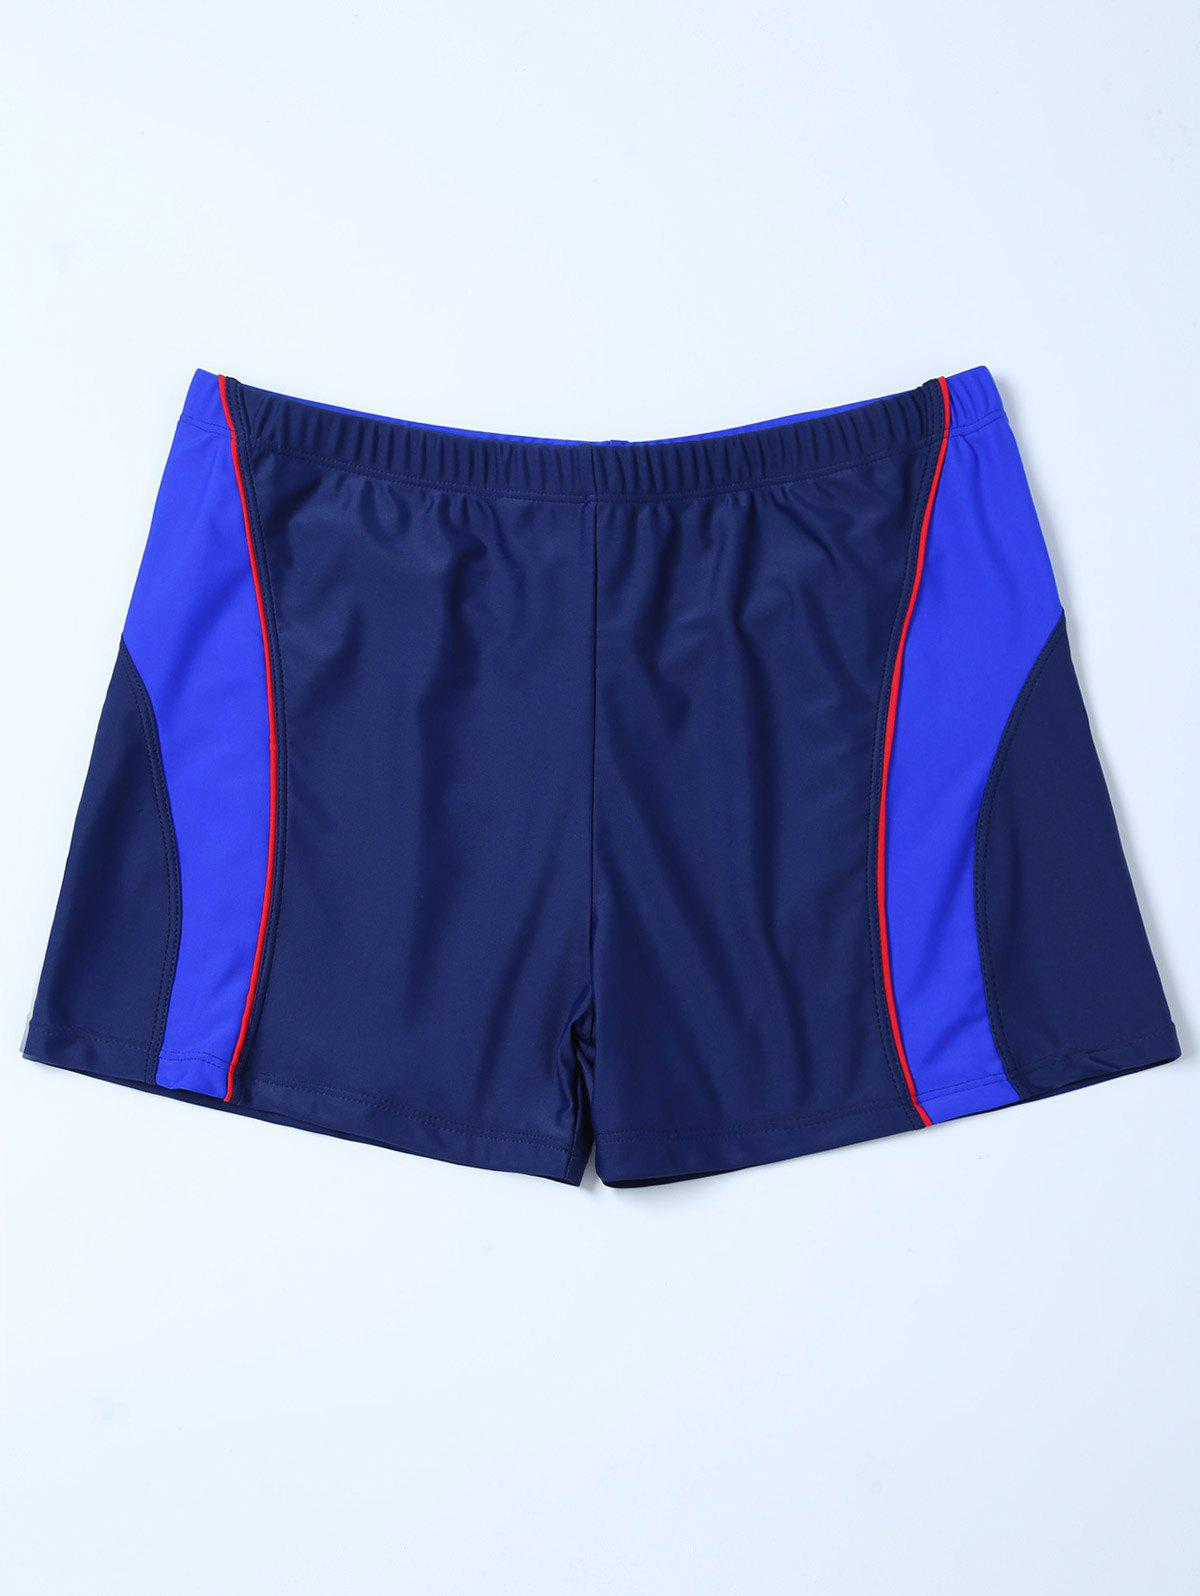 Contrast Surf Swimsuit Bottom Boyshorts - PURPLISH BLUE 4XL